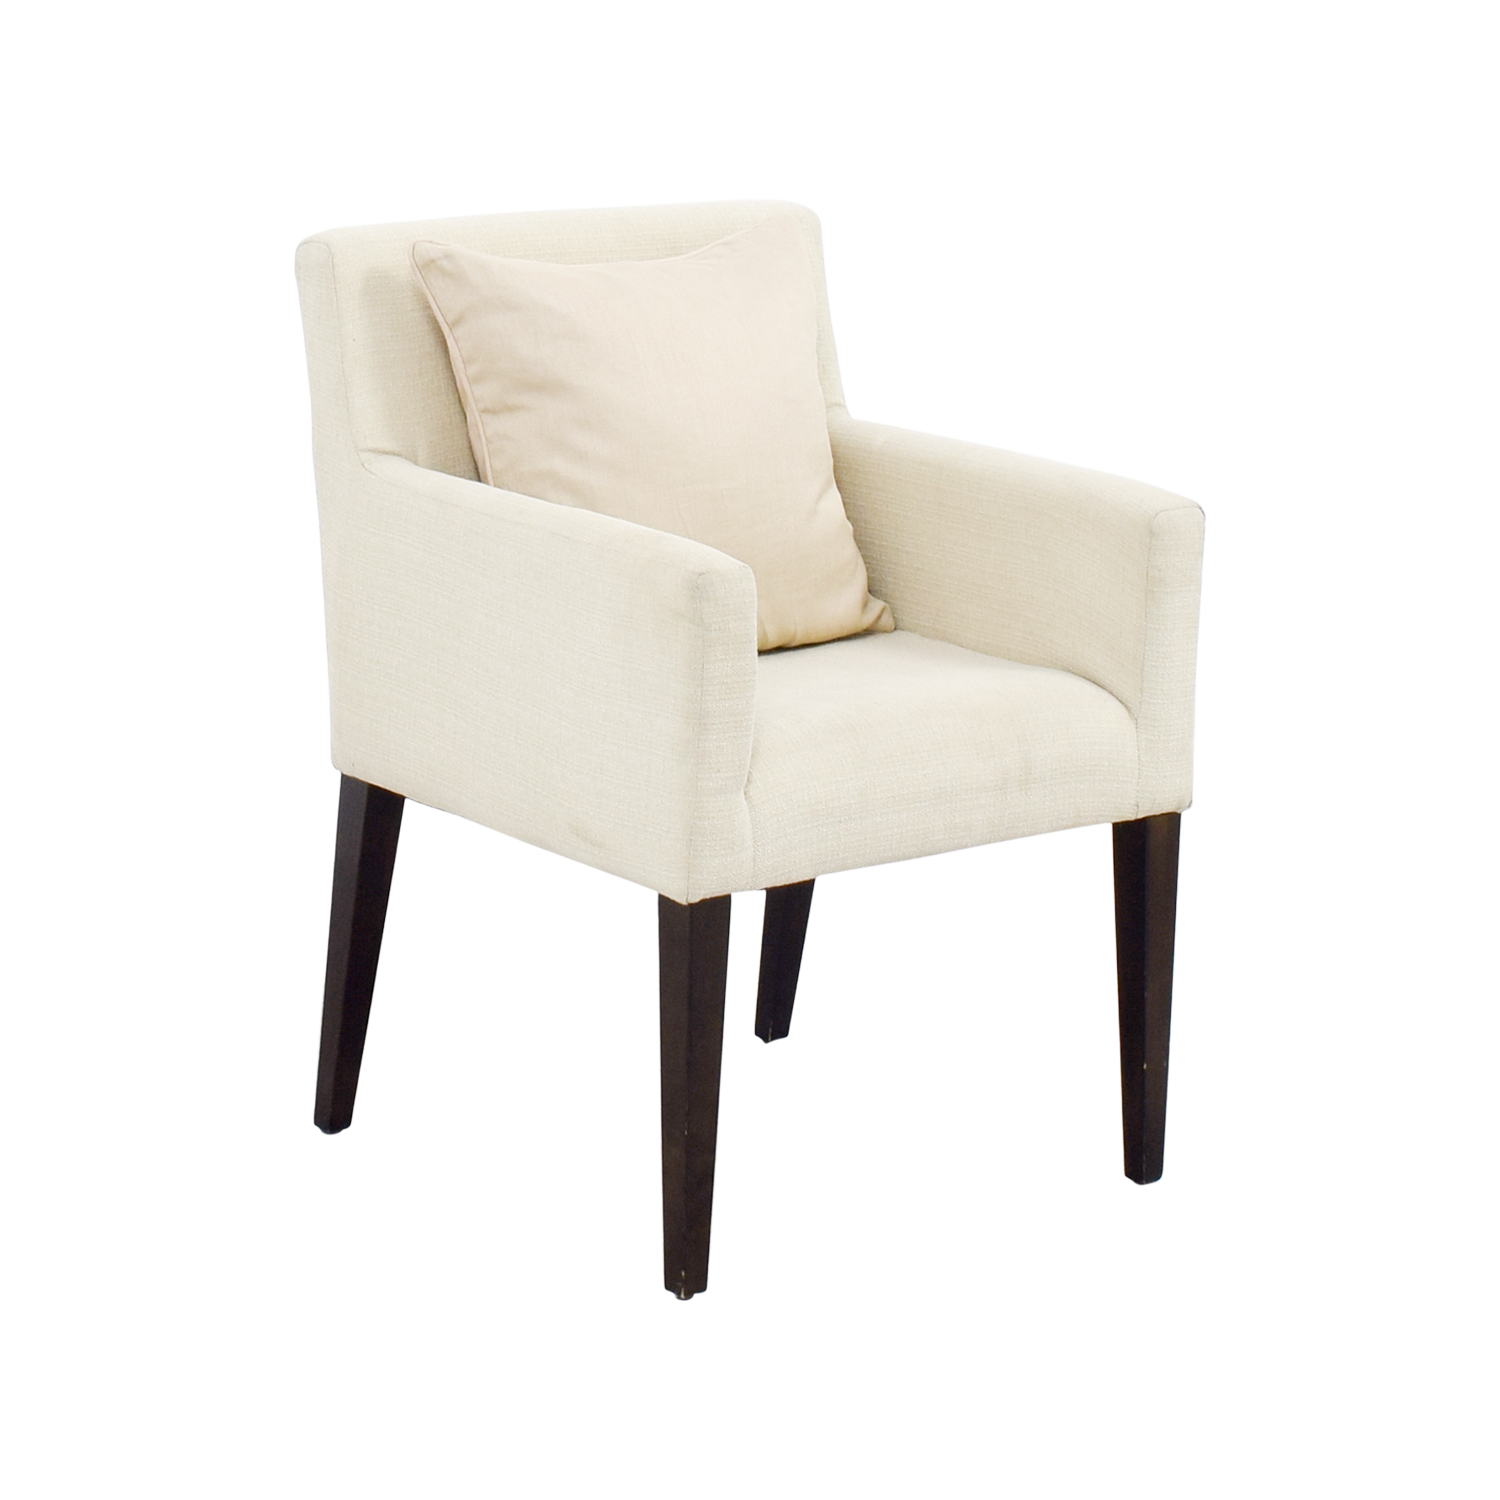 77 OFF  Pottery Barn Pottery Barn Dining Room Side Chair